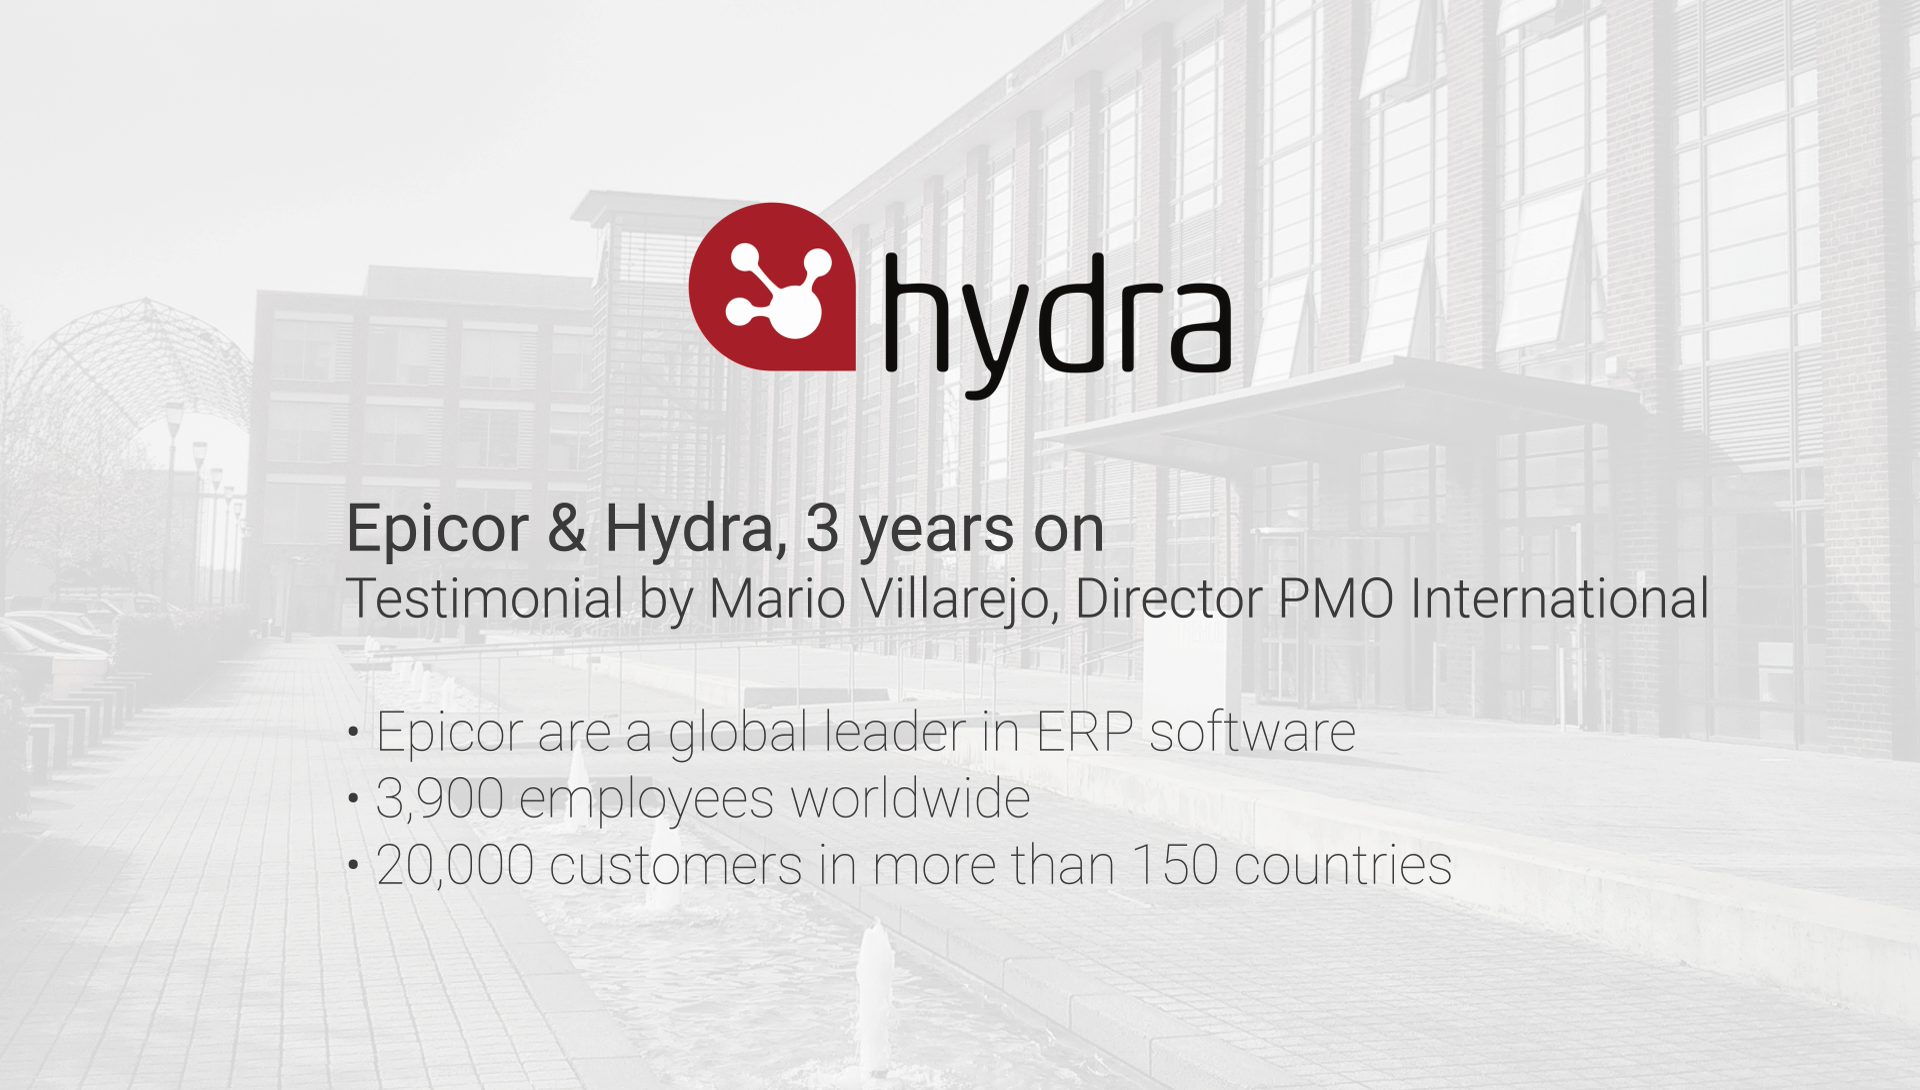 Epicor & Hydra - 3 Years On